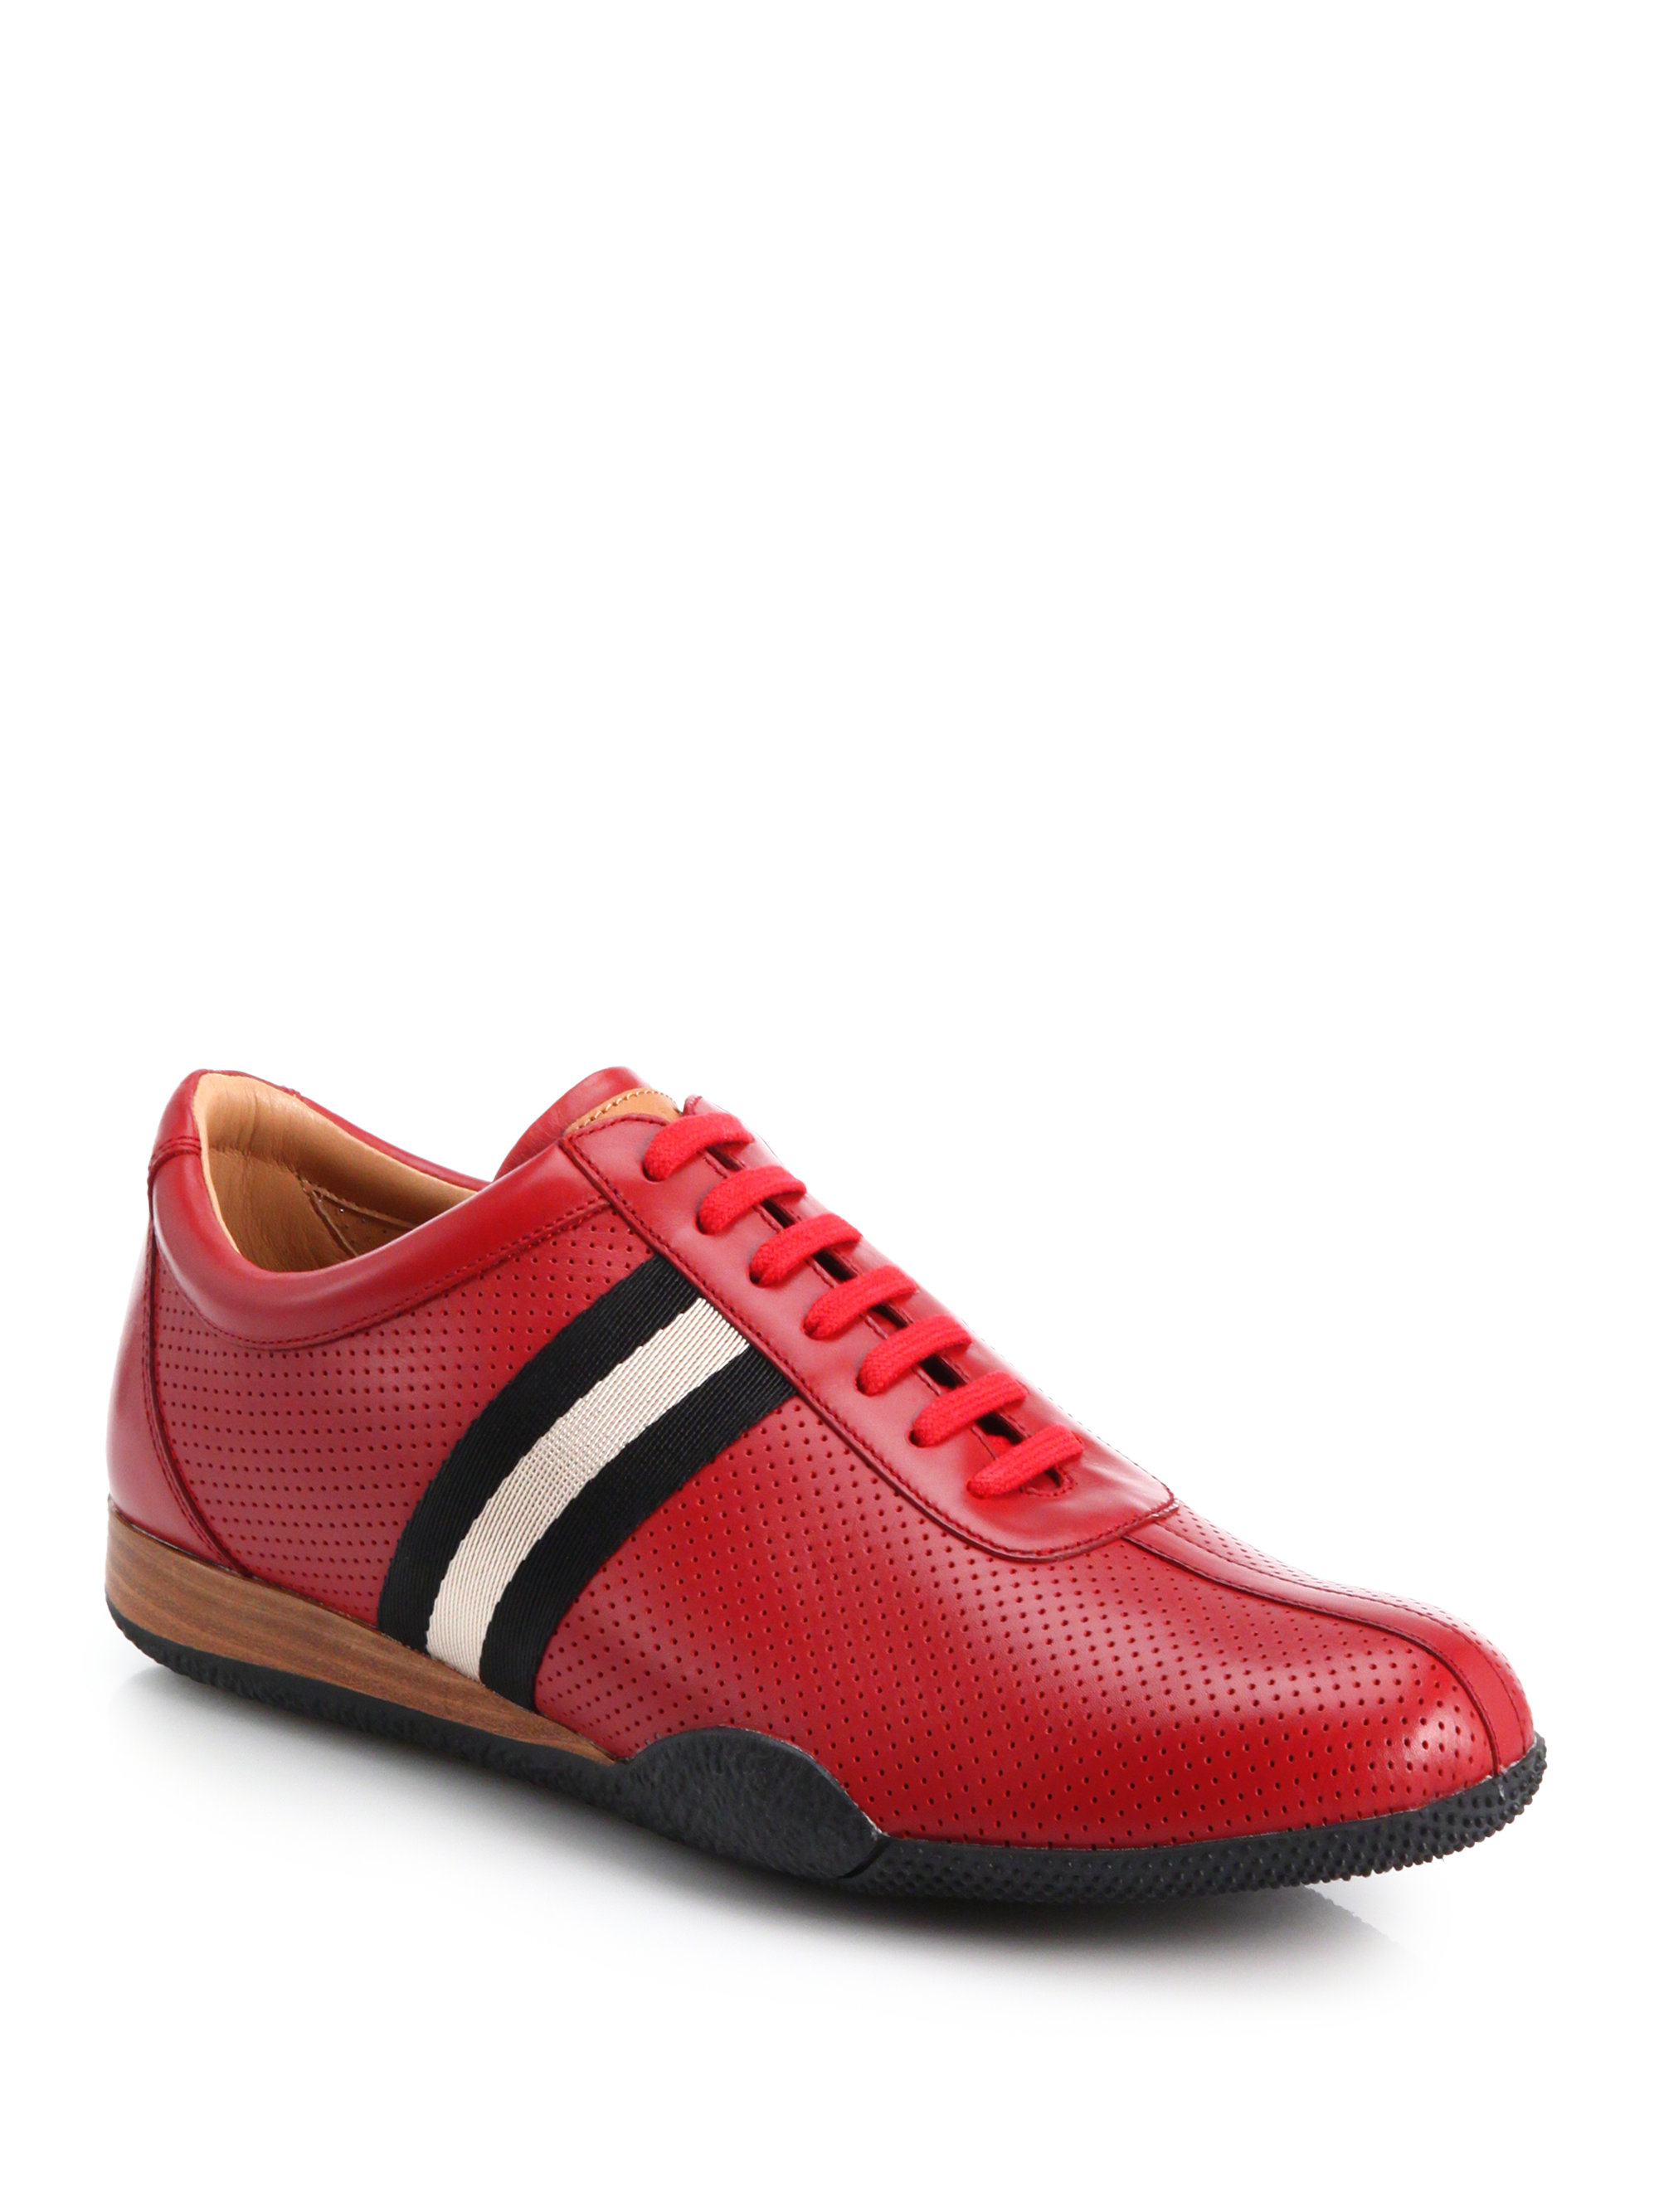 Bally Golf Shoes